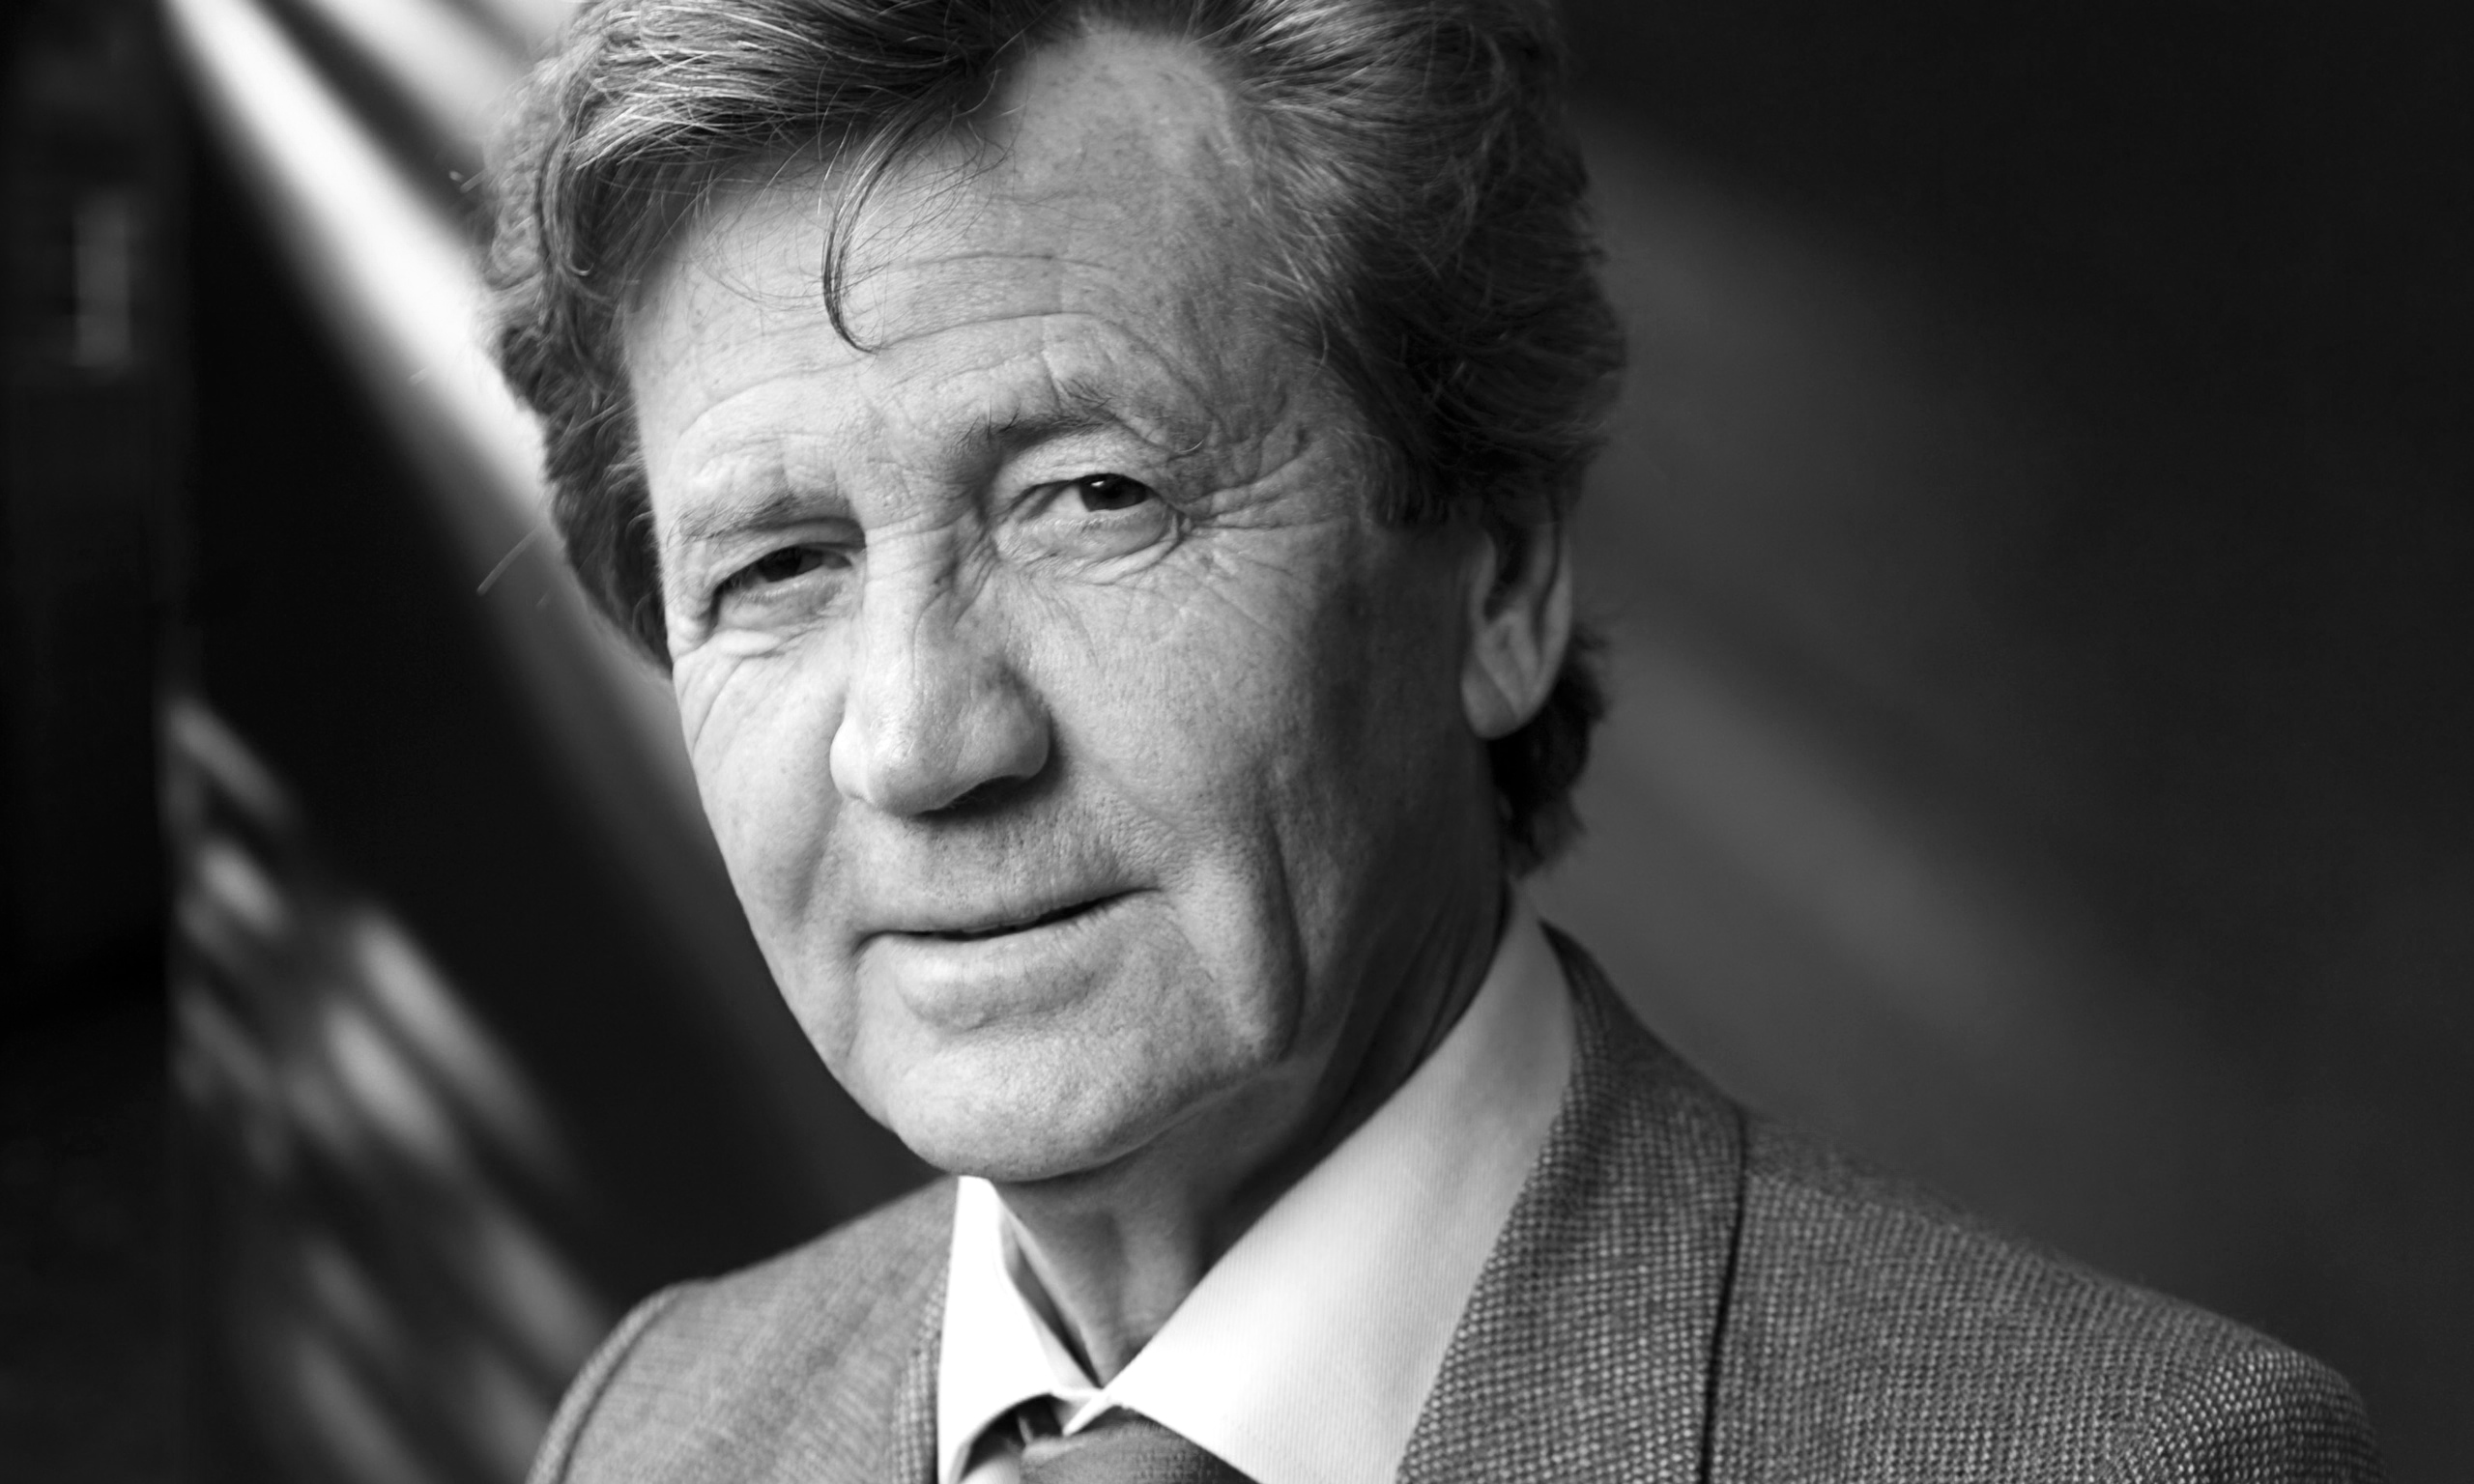 Melvyn Bragg at Live@thelibrary